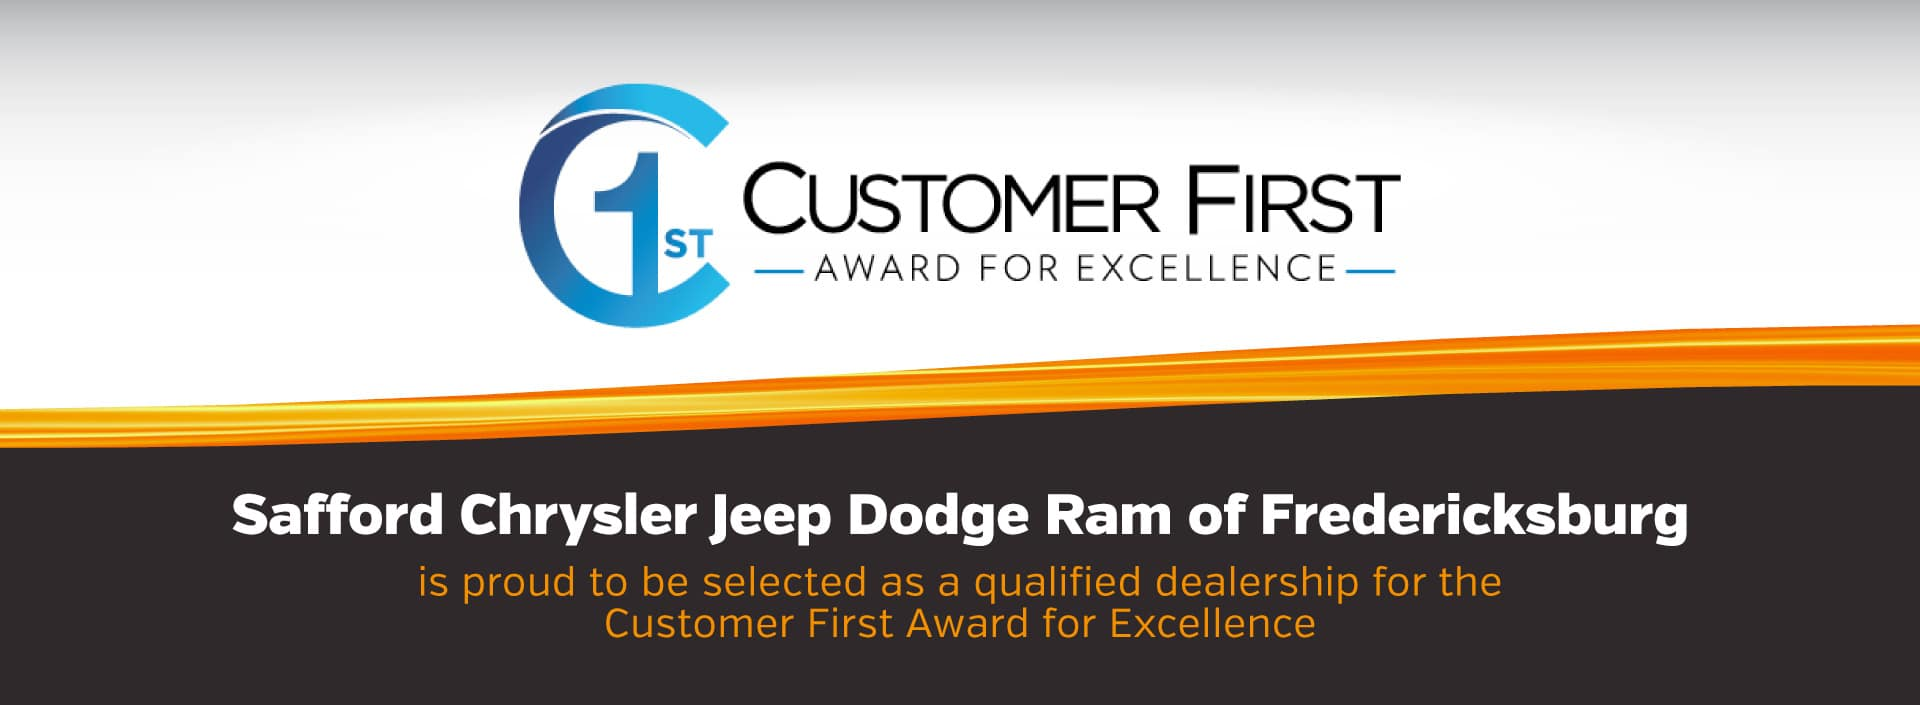 Safford CJDR of Fredericksburg is proud to be selected as a qualified dealership for the Customer First Award for Excellence